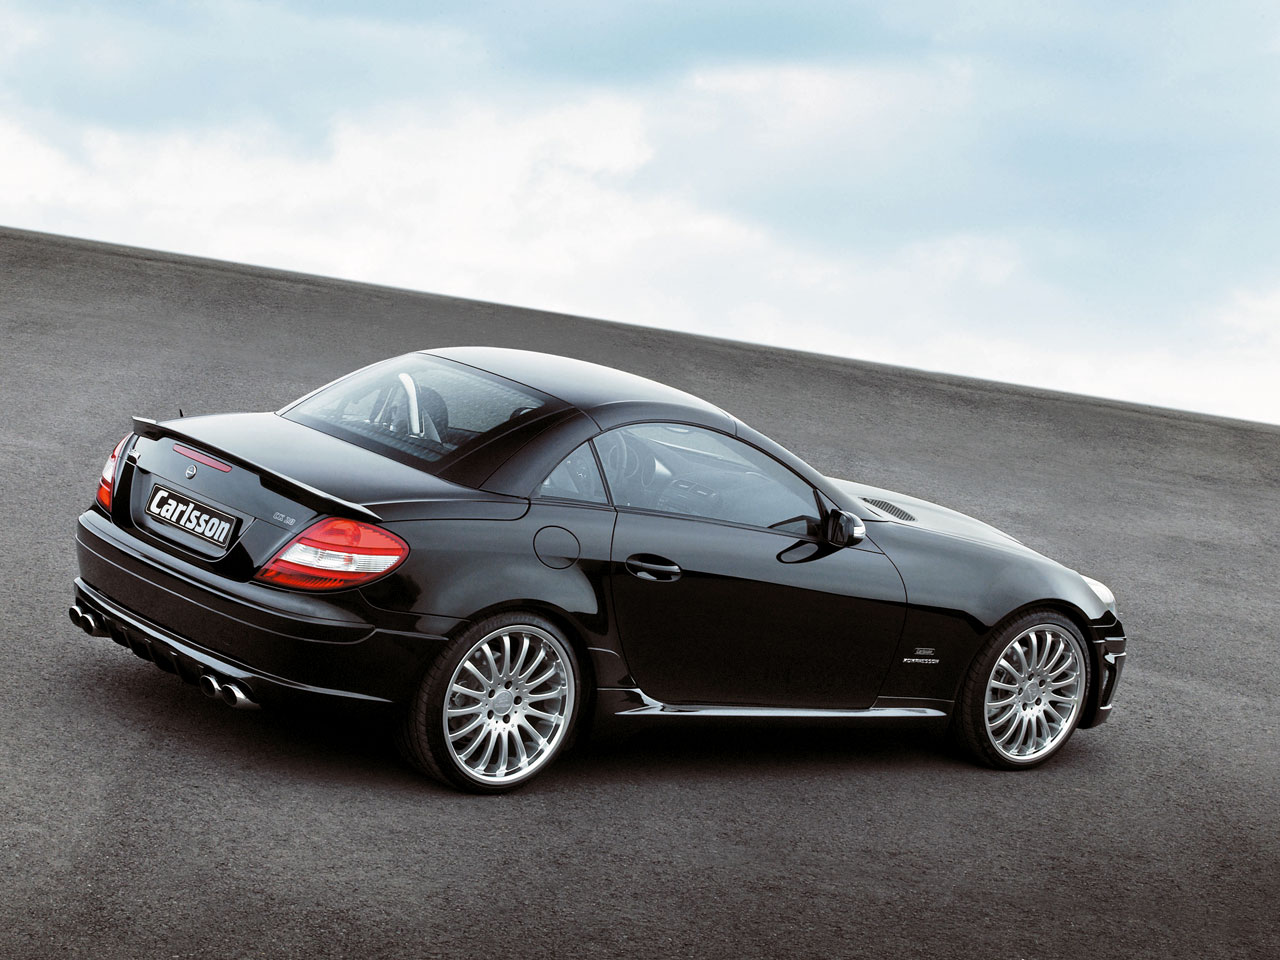 Carlsson SLK photo 17747